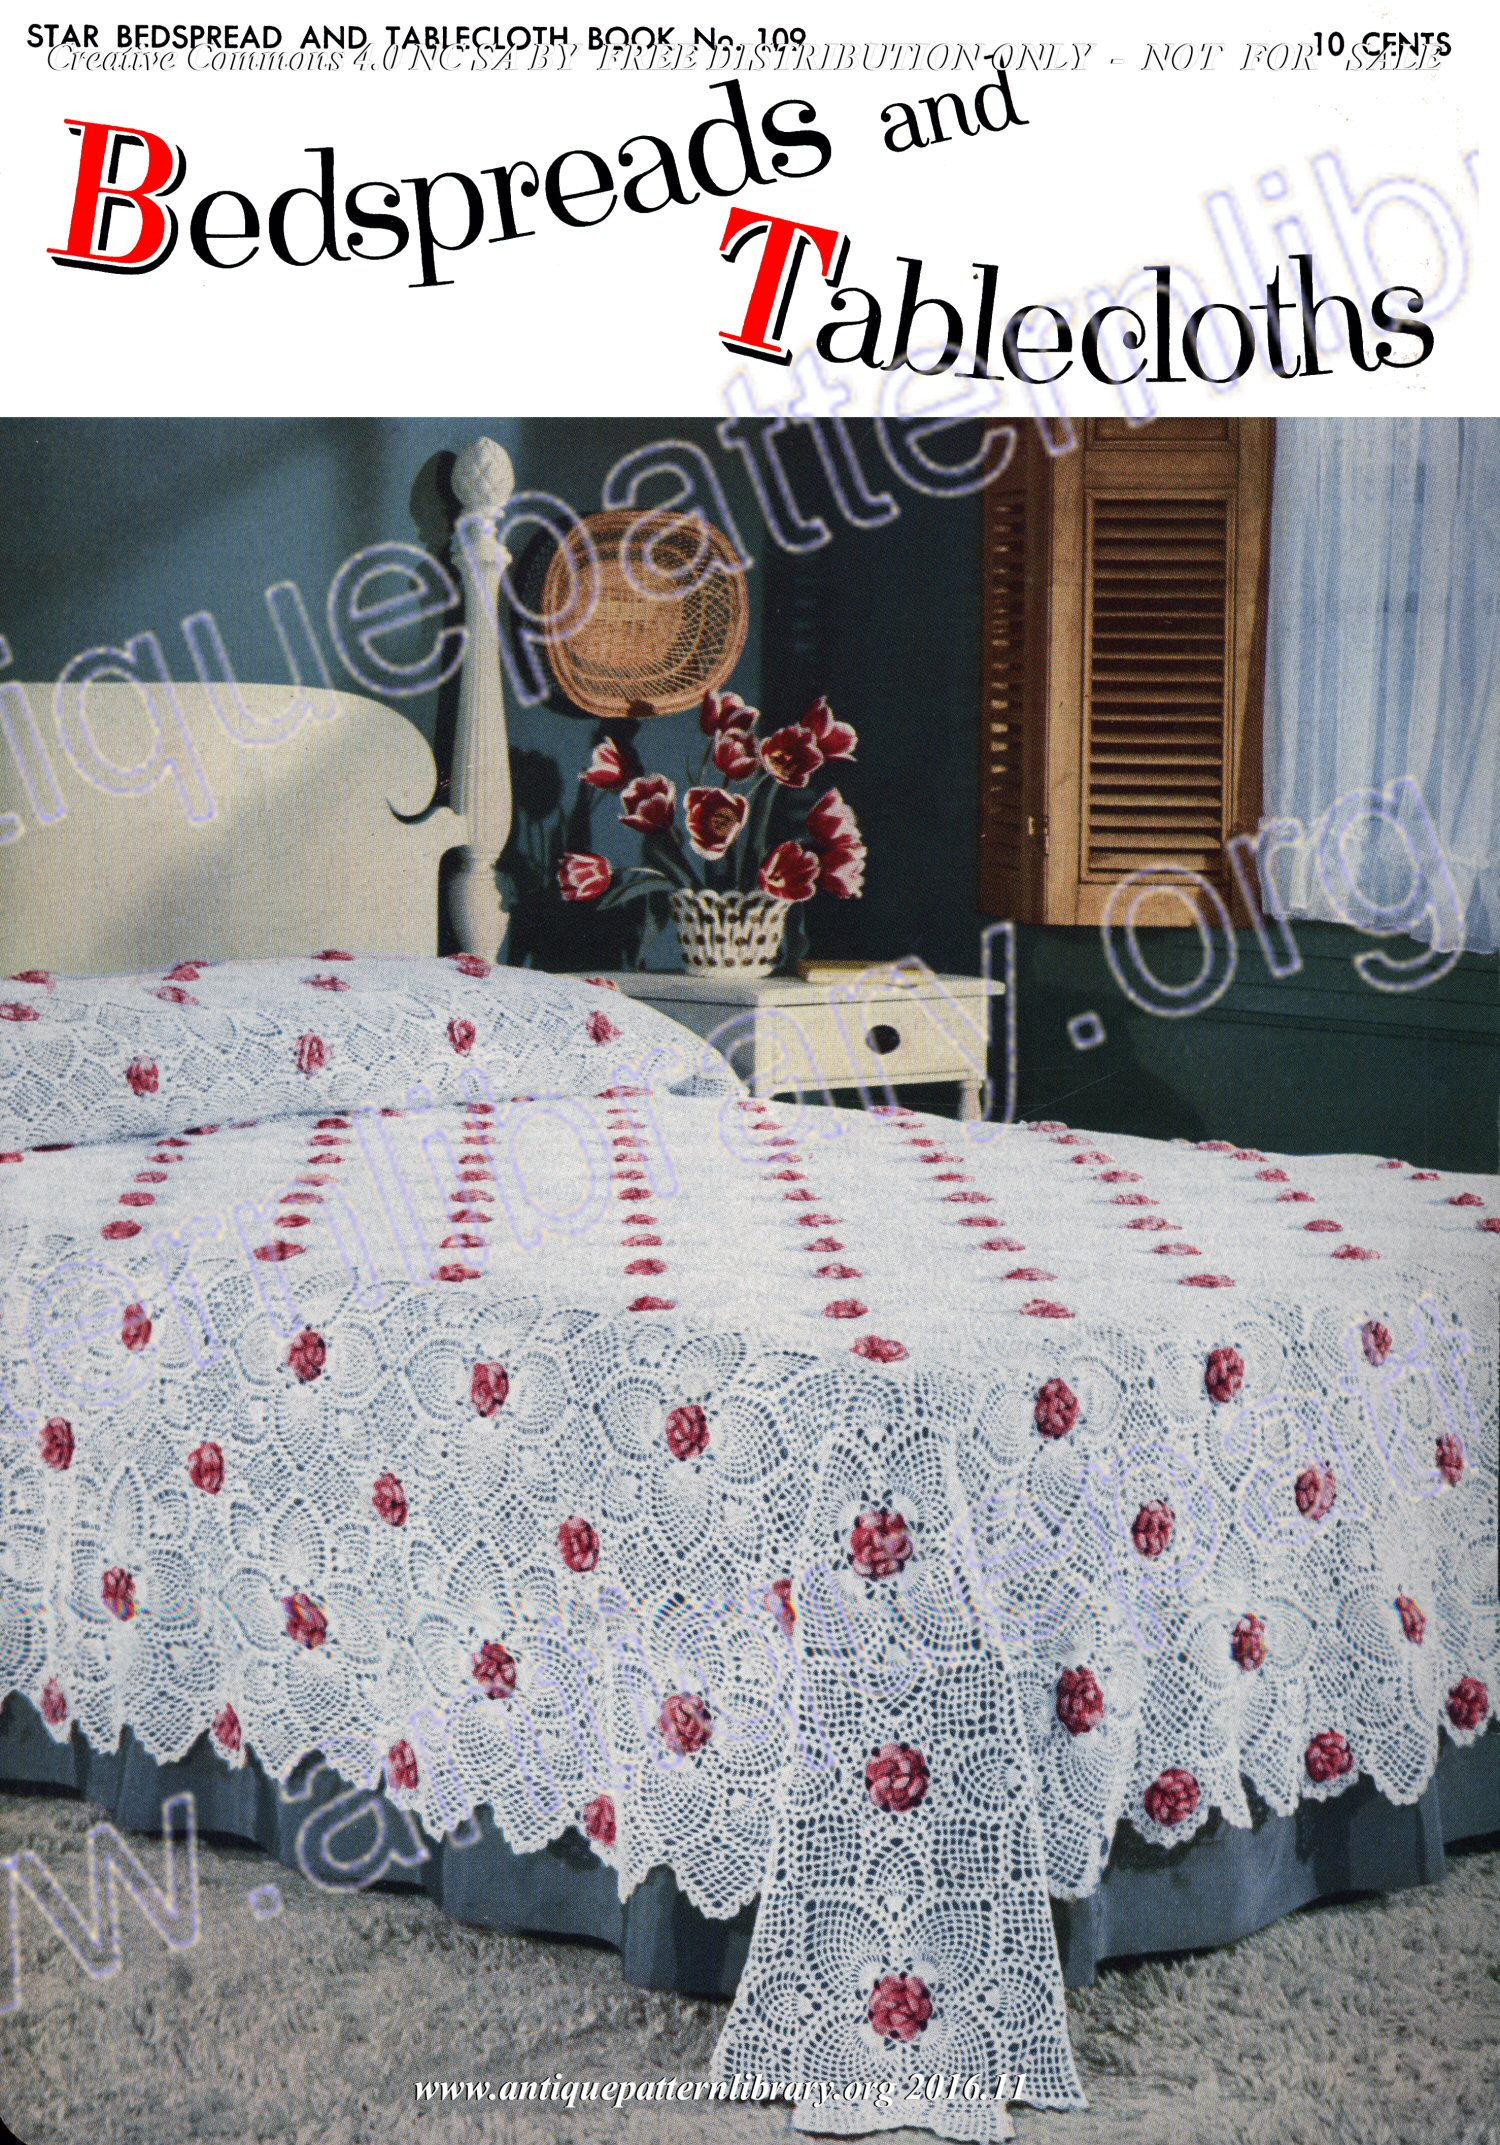 G-HD008 Bedspreads and Tablecloths